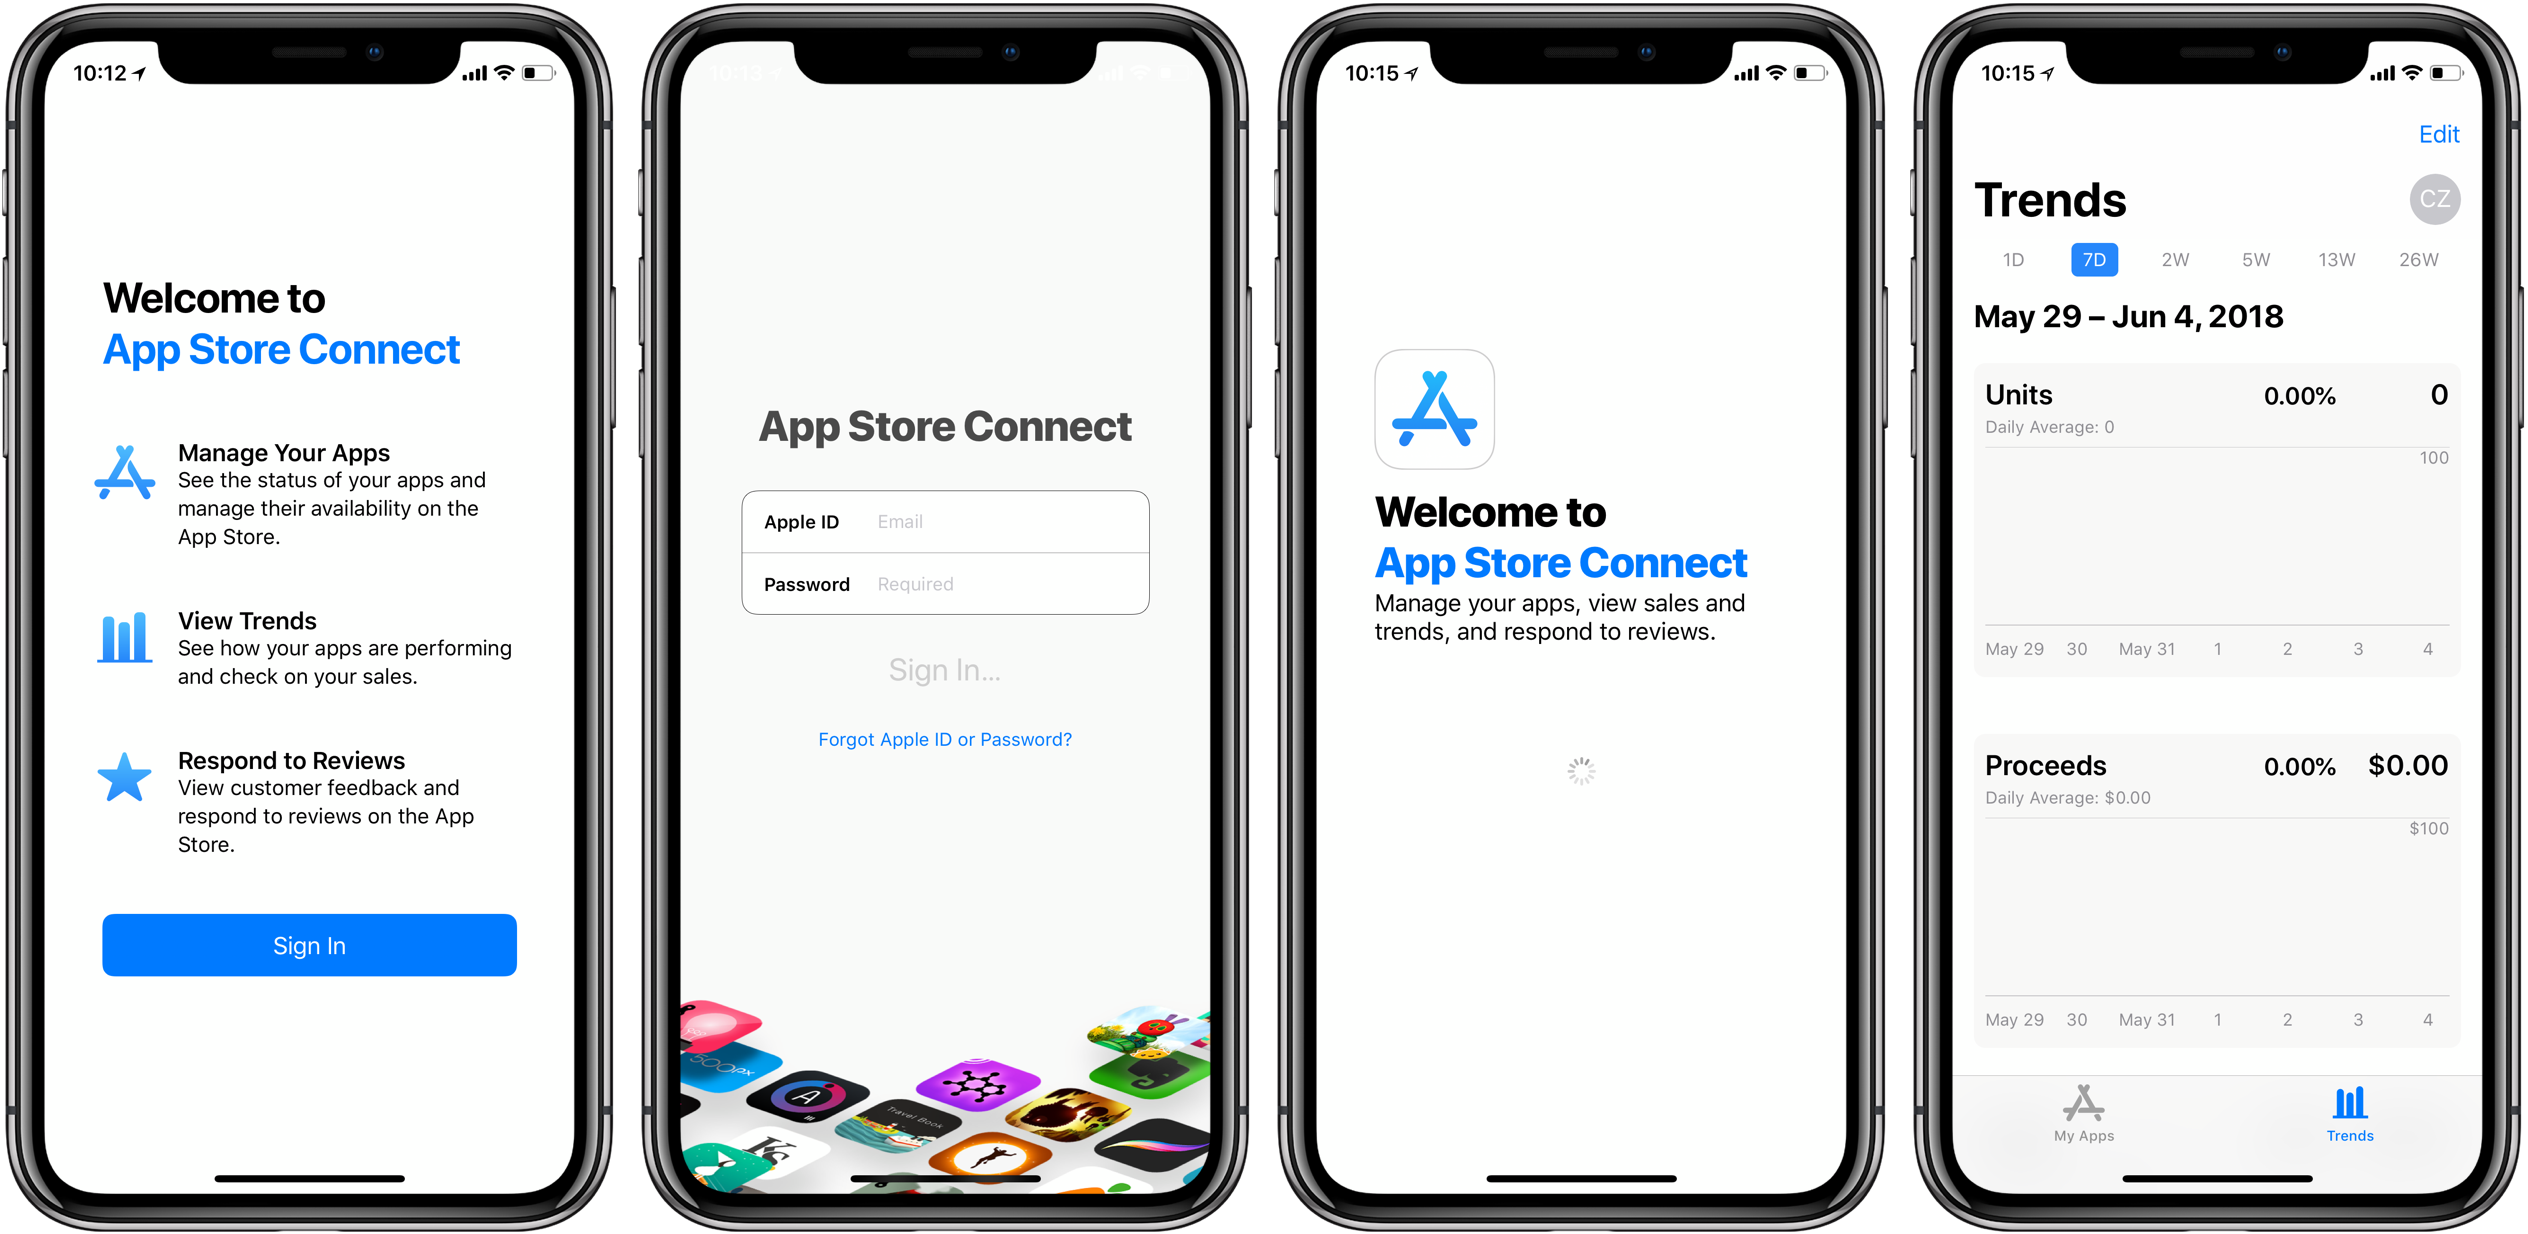 A screenshot showing off the App Store Connect app for iPhone